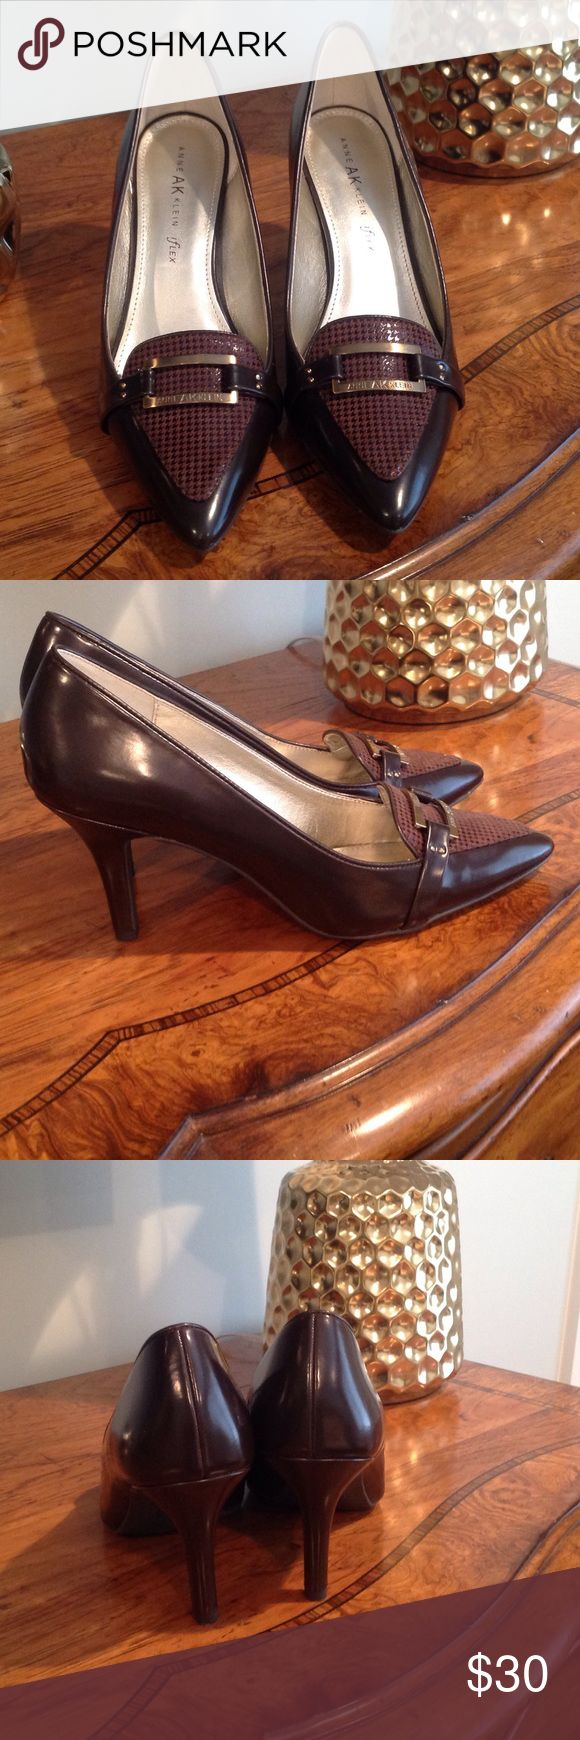 Anne Klein brown pump, sale! Very comfortable pump, worn once, look at pics front has Plaid pattern on toe with a buckle Ann Klein Shoes Heels